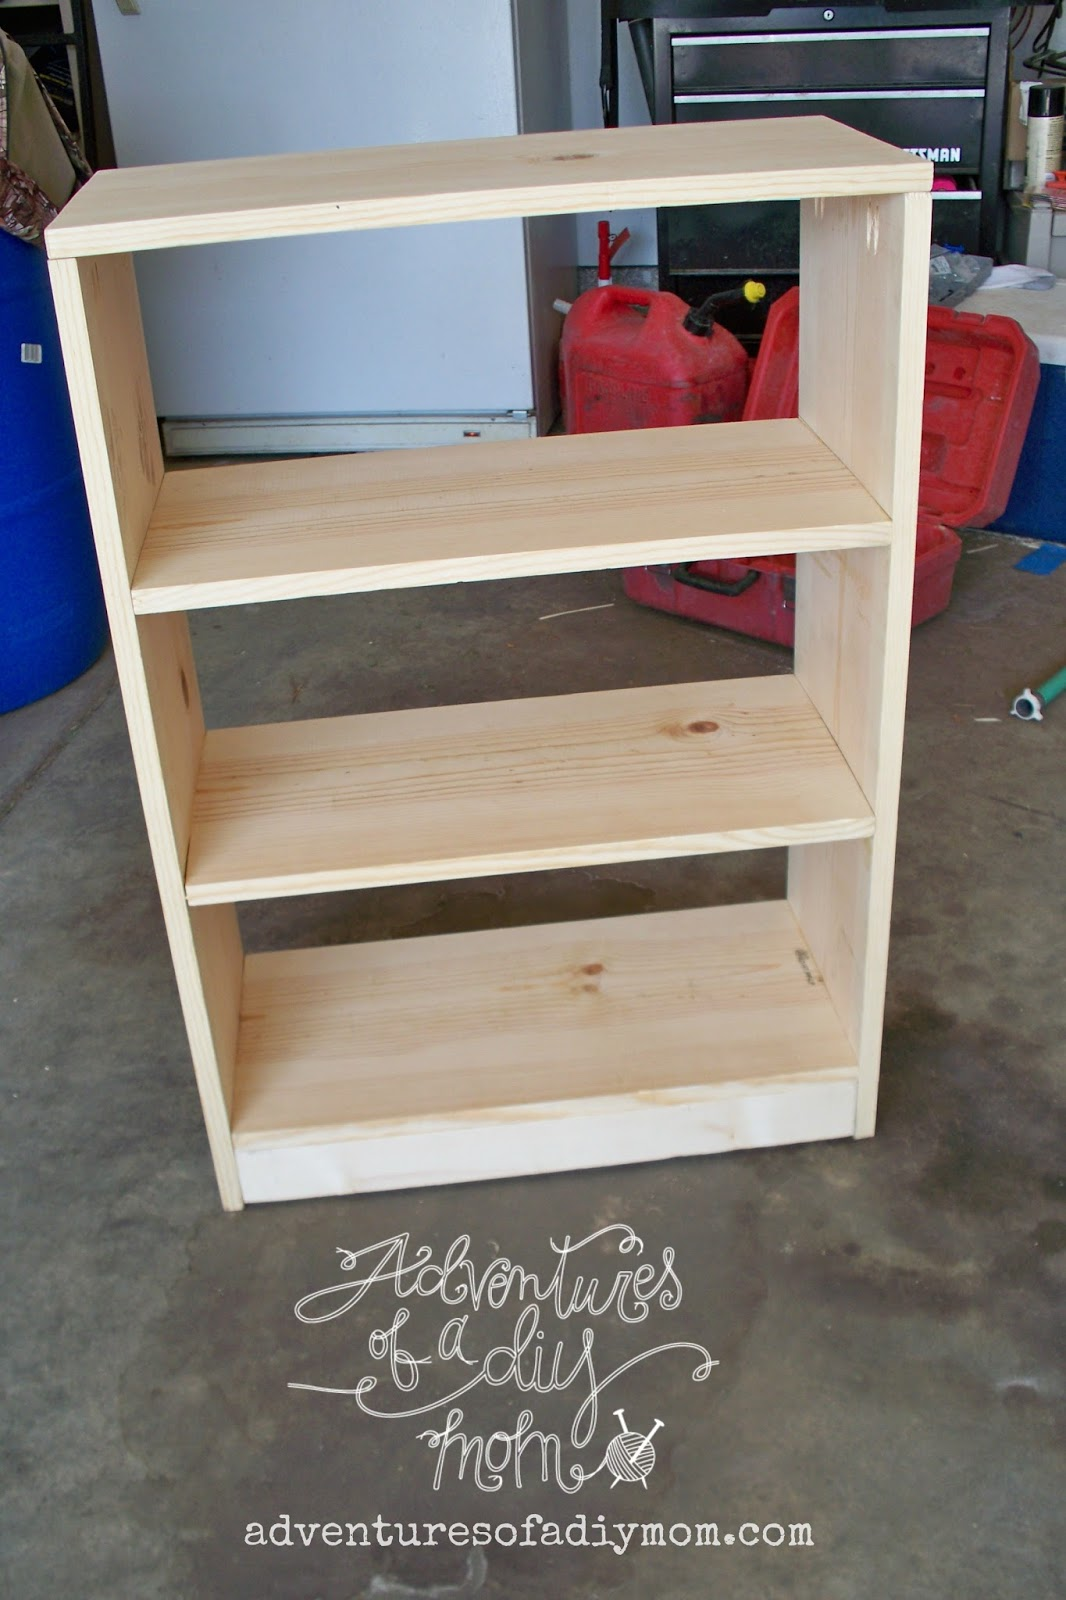 How to Build a DIY Bookshelf 1066 x 1600